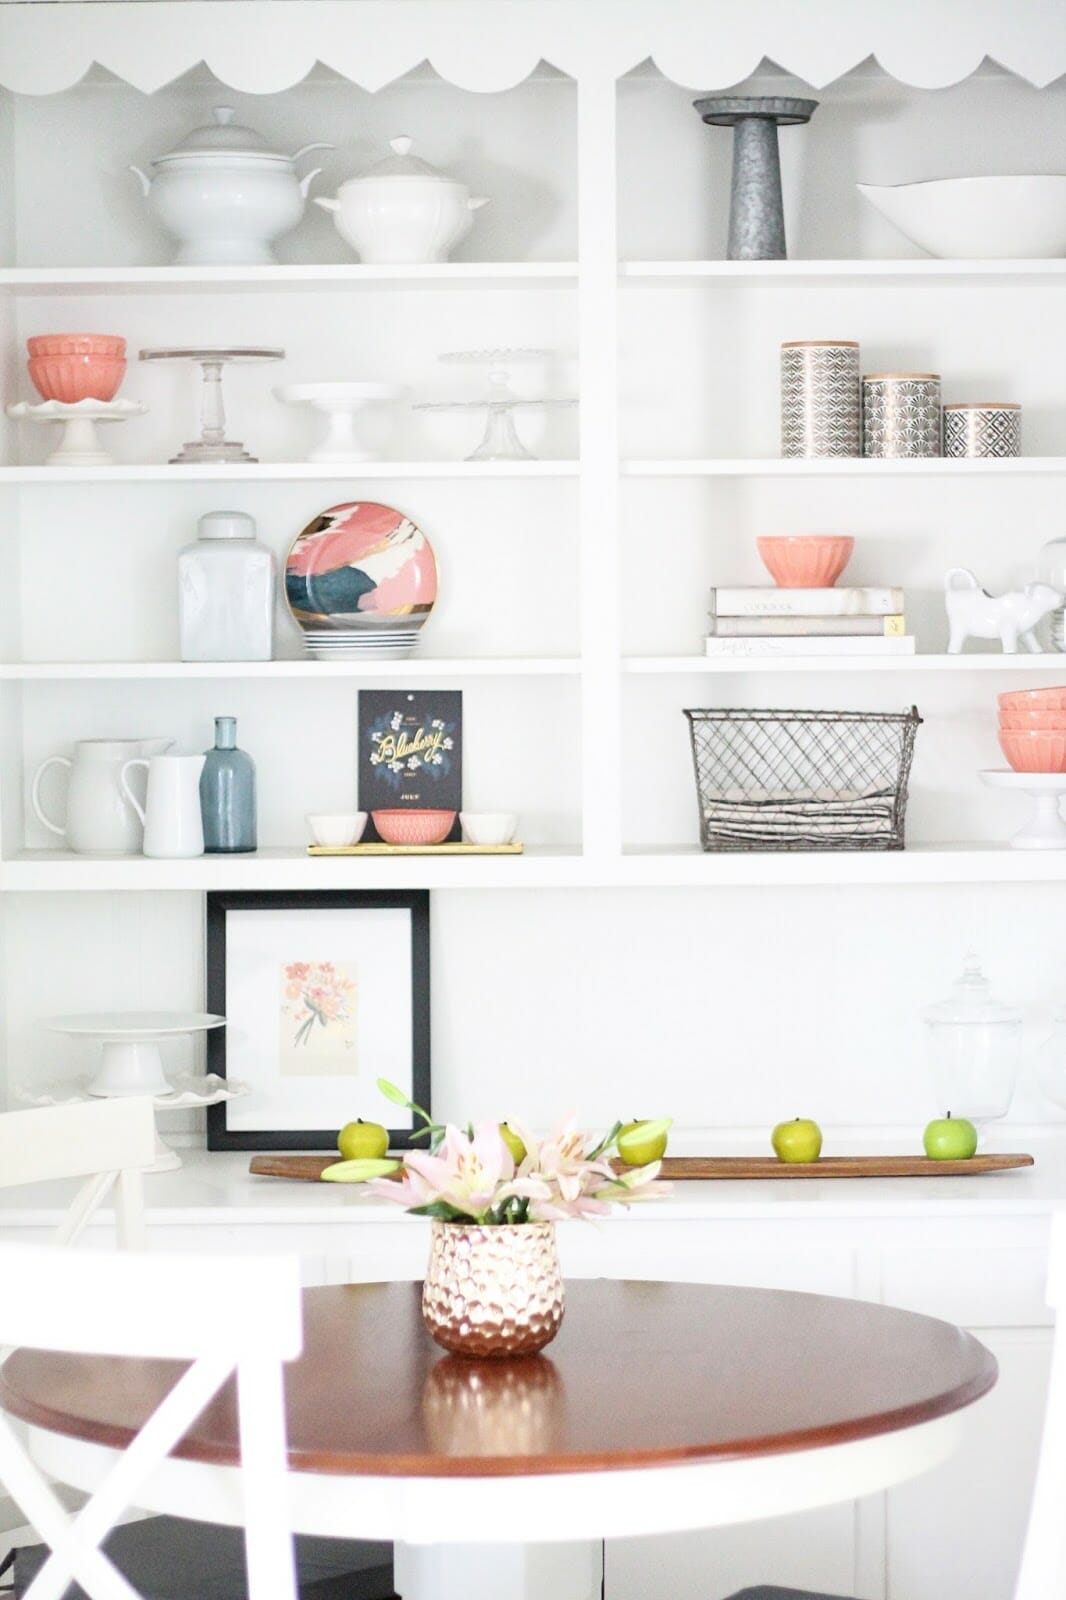 Restyling Our Breakfast Nook {Modern Farmhouse}